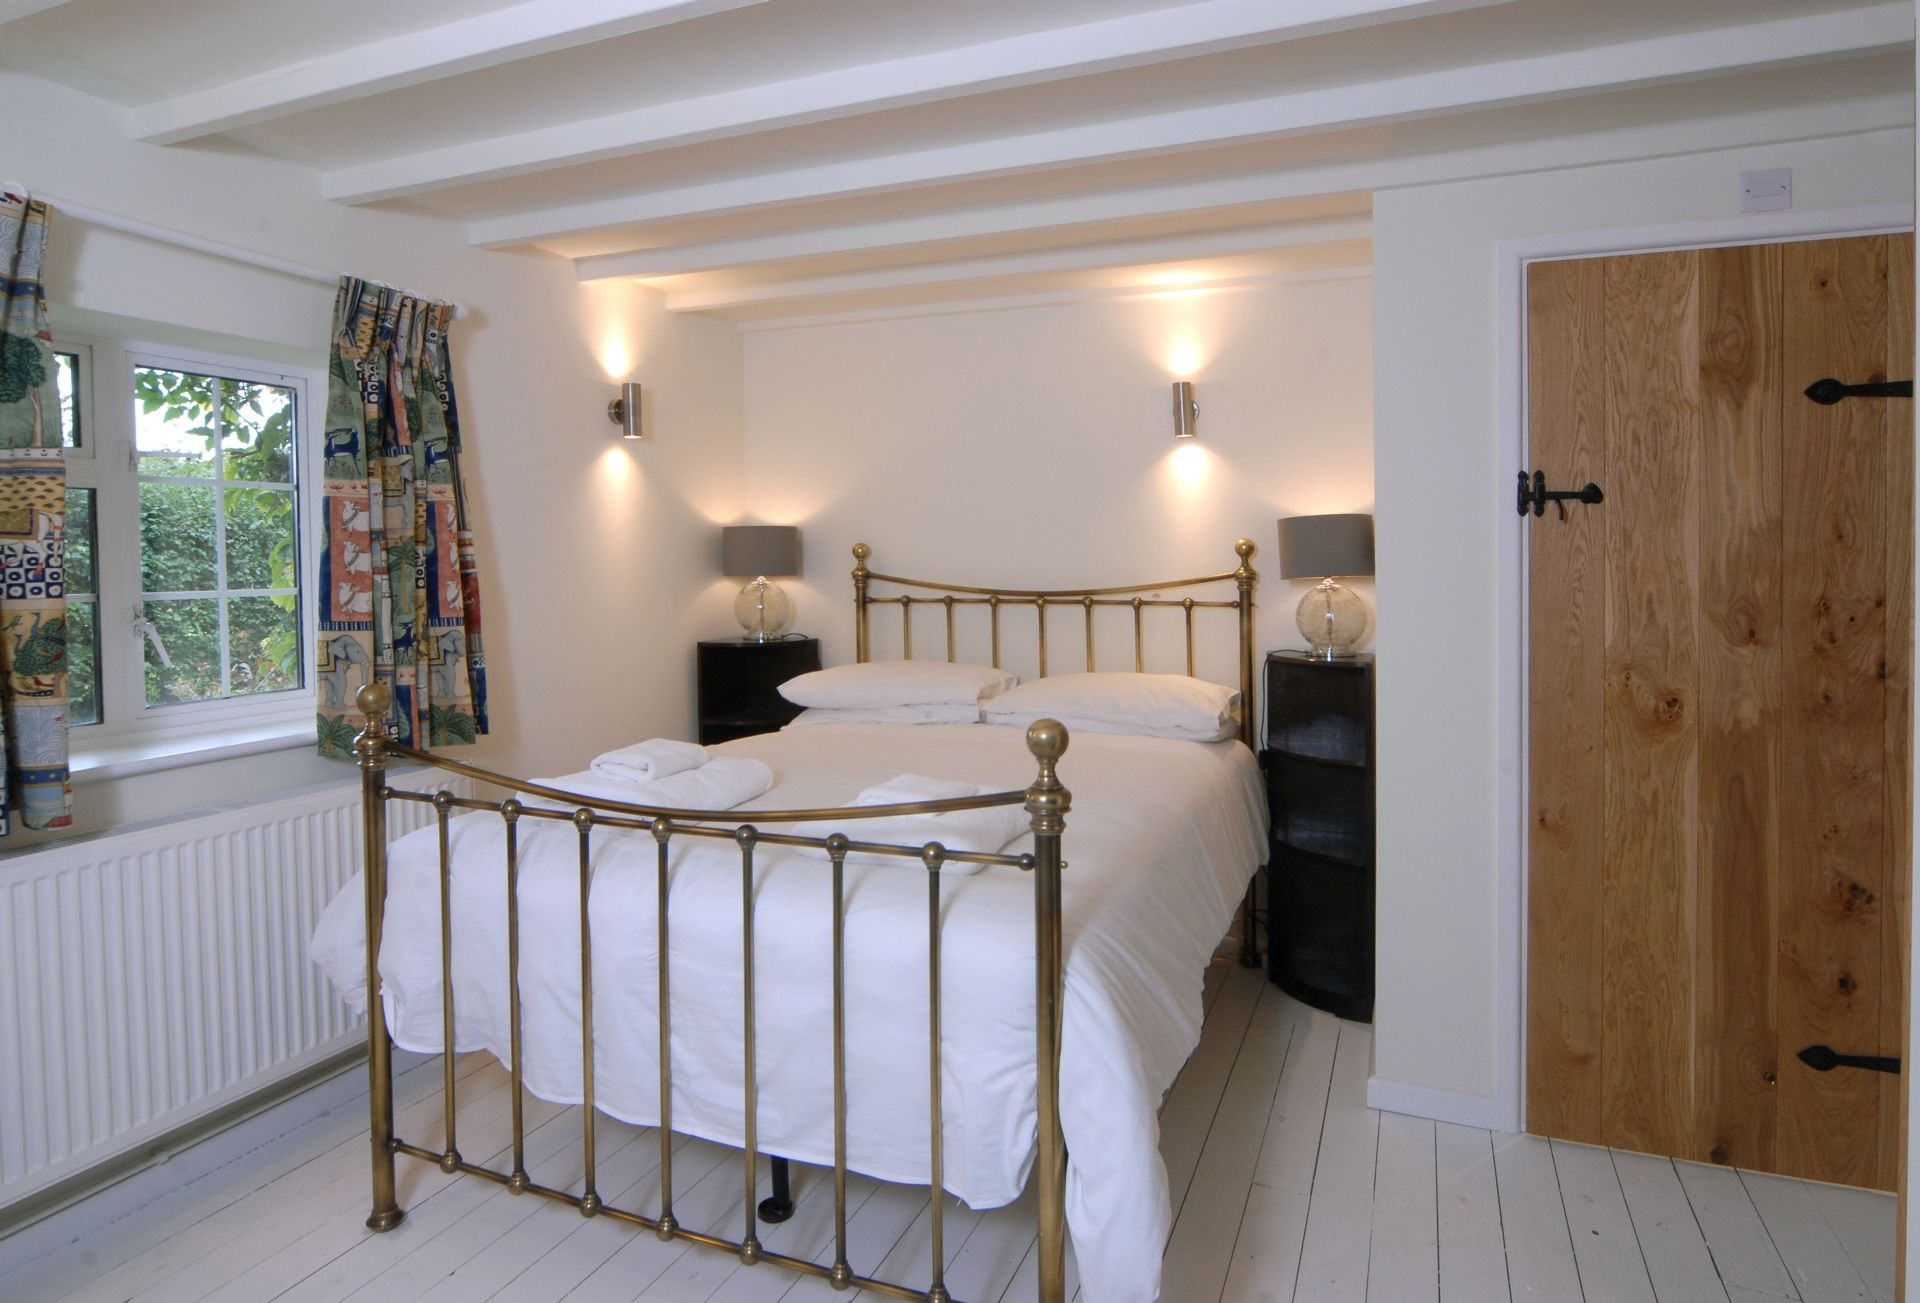 Ground floor: Bedroom one with double bed